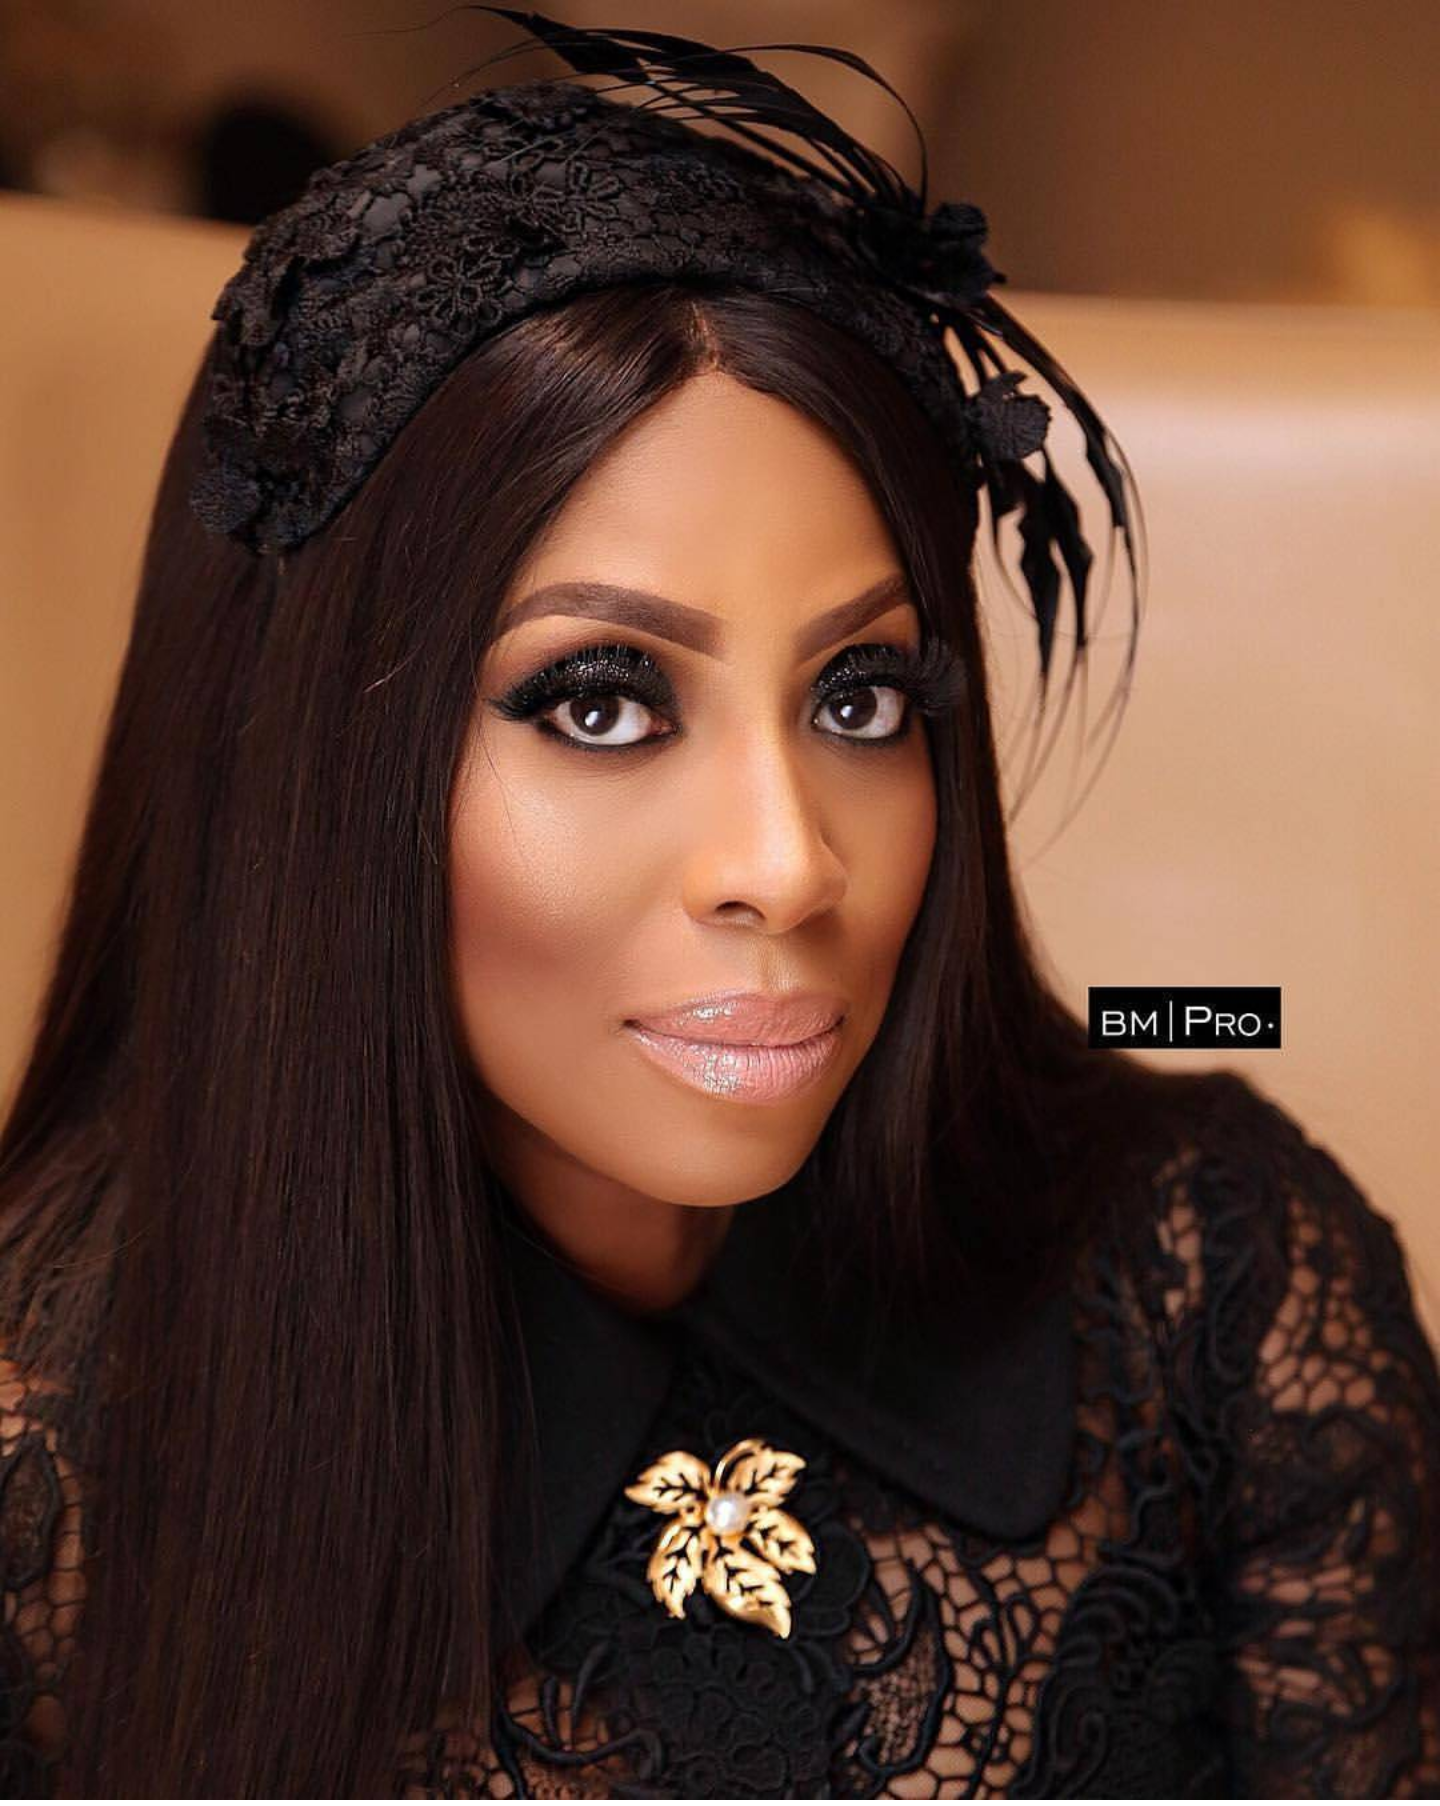 The Hollywood reporter lists Mo Abudu among 25 most powerful women in global television